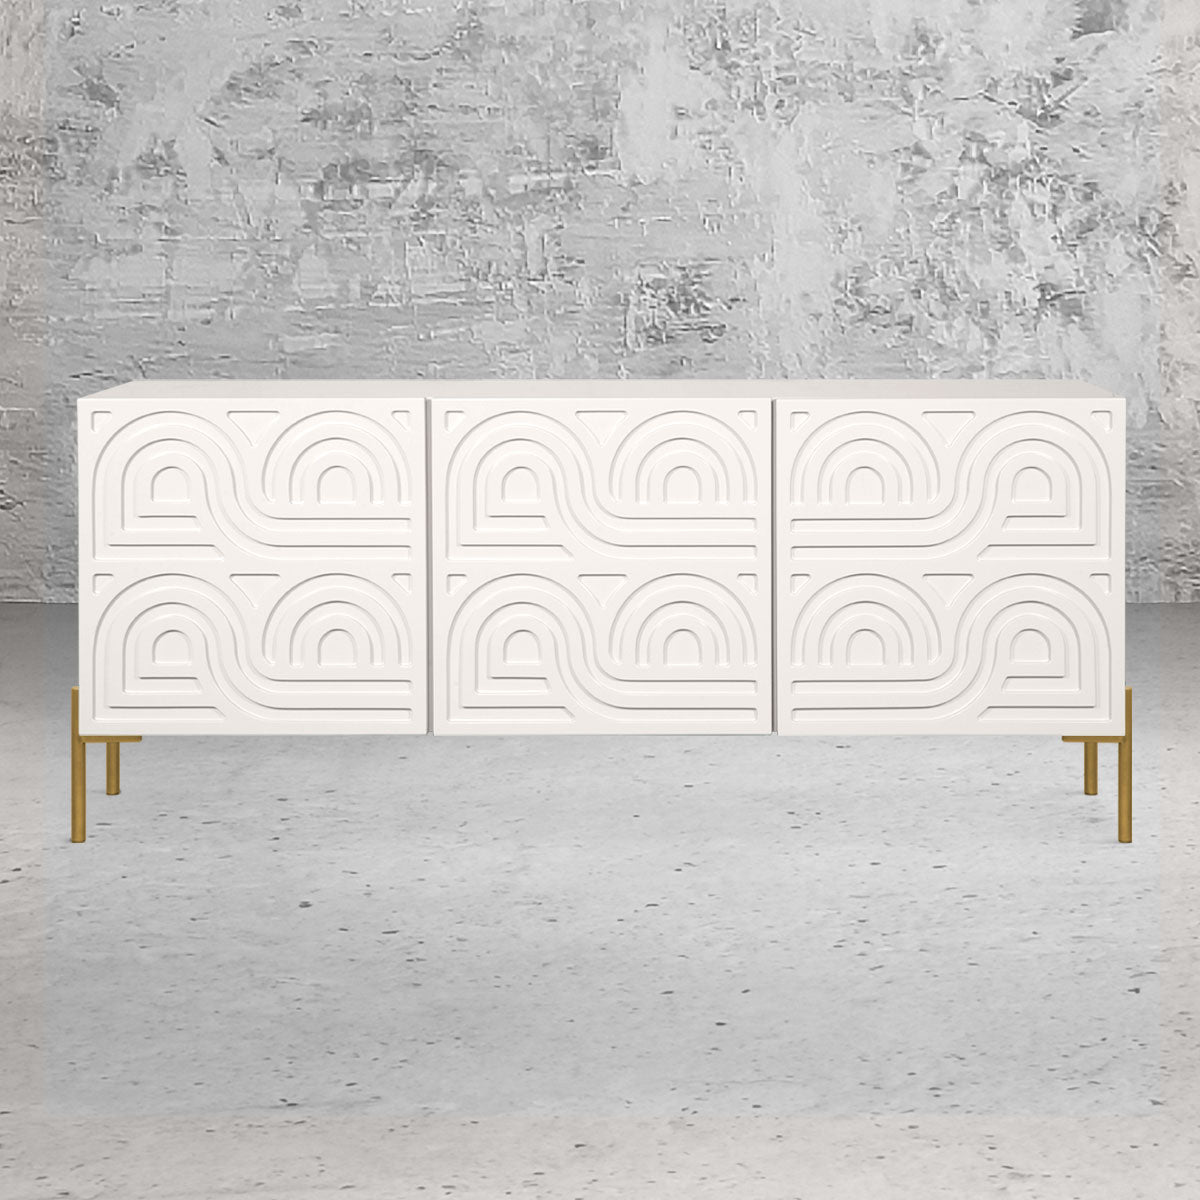 Three section credenza with decorative design on the front panels, a white finish and brushed brass legs.